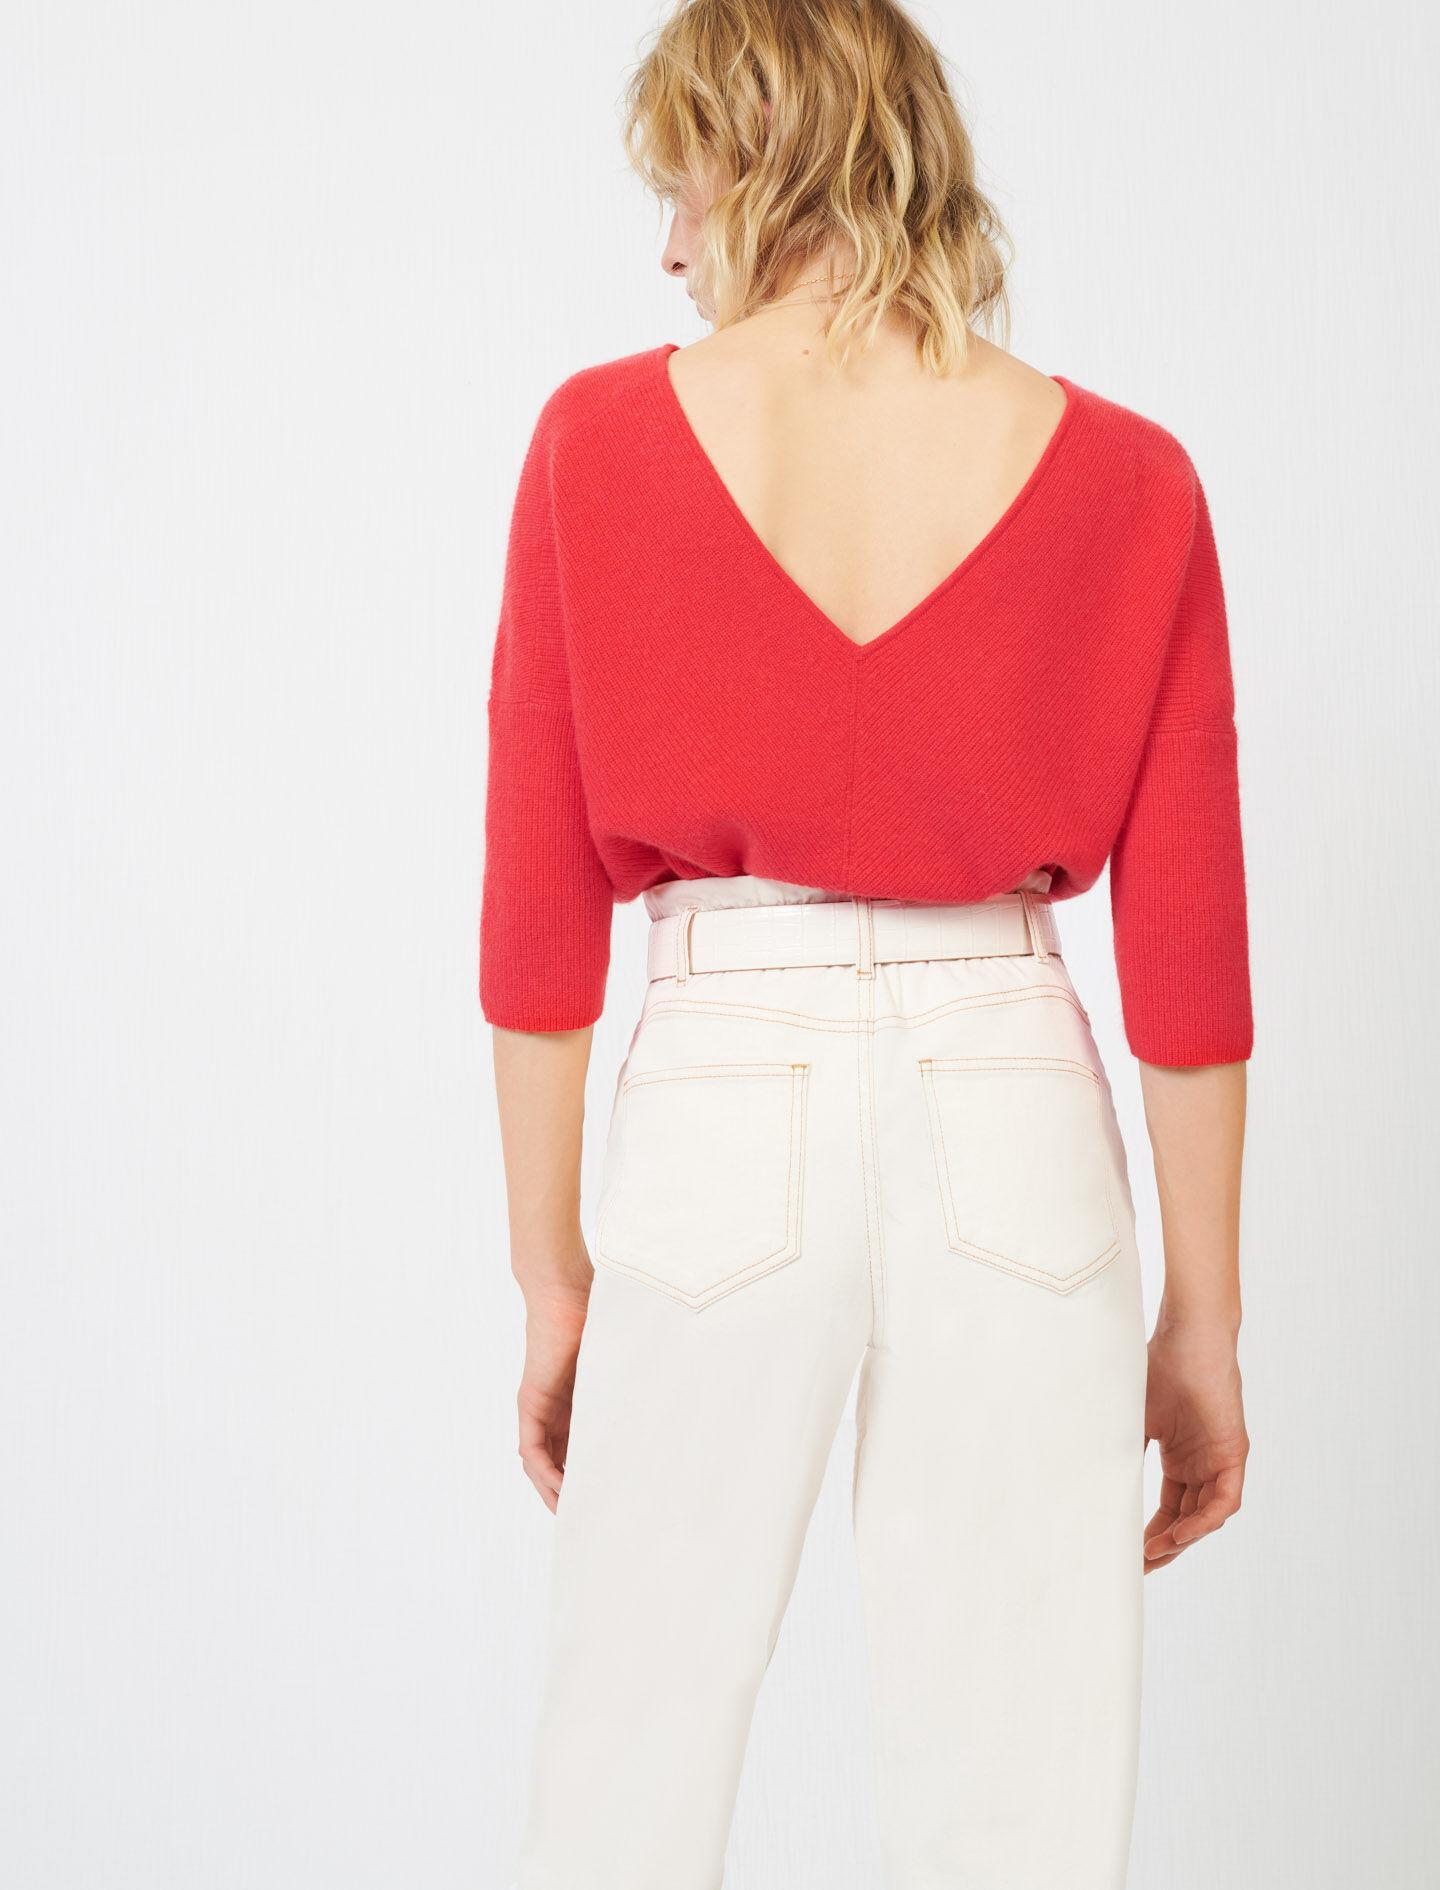 LOW-BACK CASHMERE SWEATER